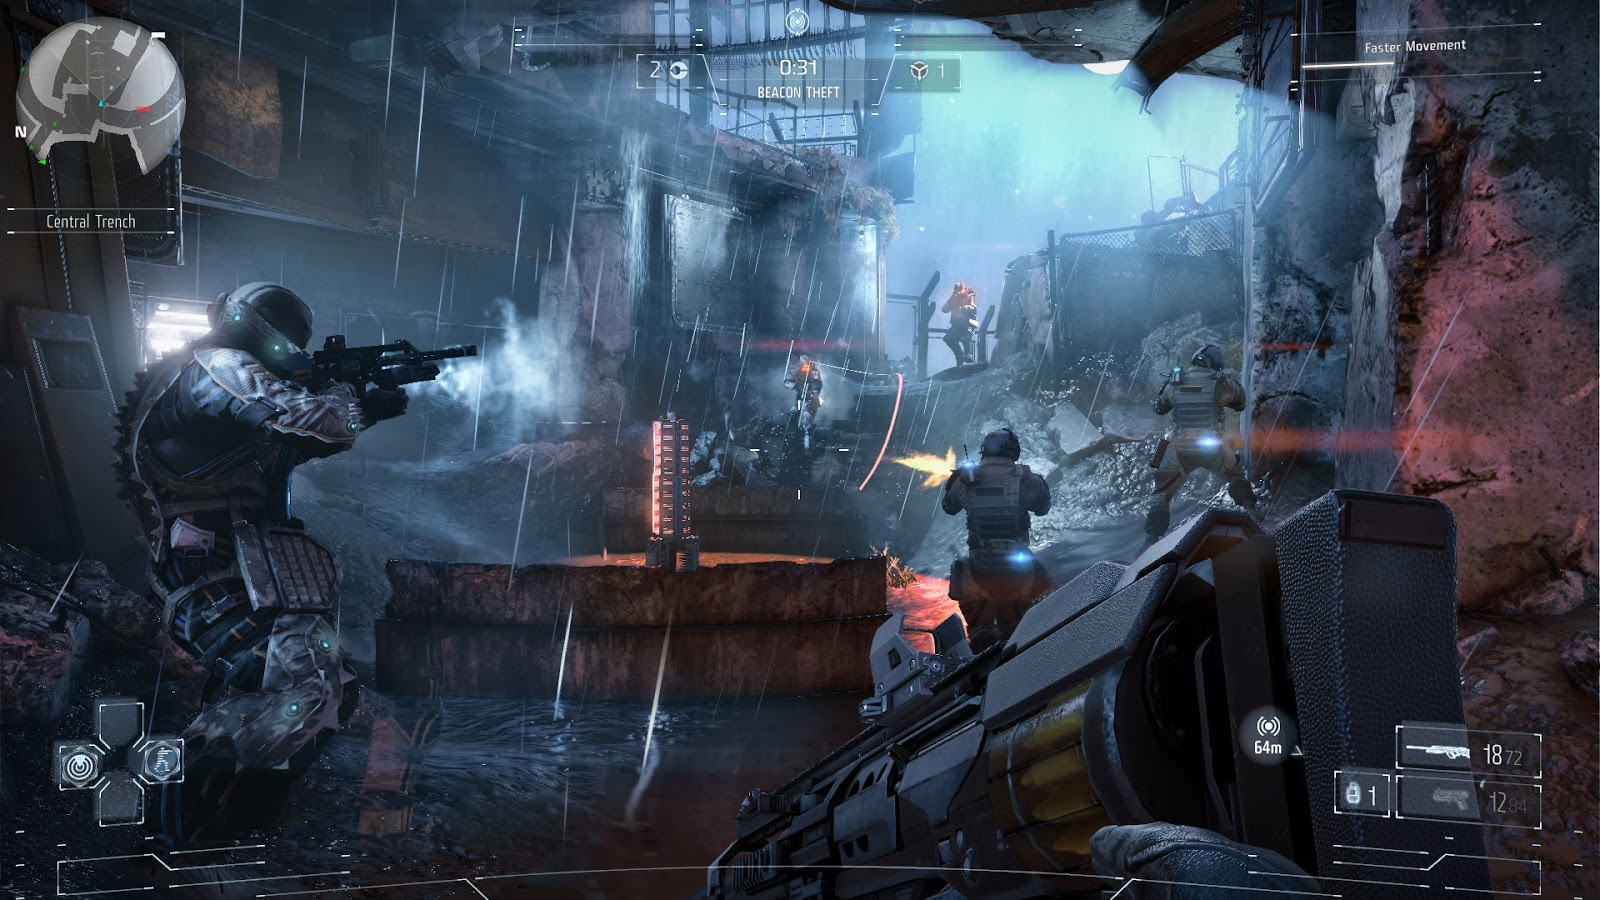 killzone shadow fall multiplayer hd wallpaper.jpg